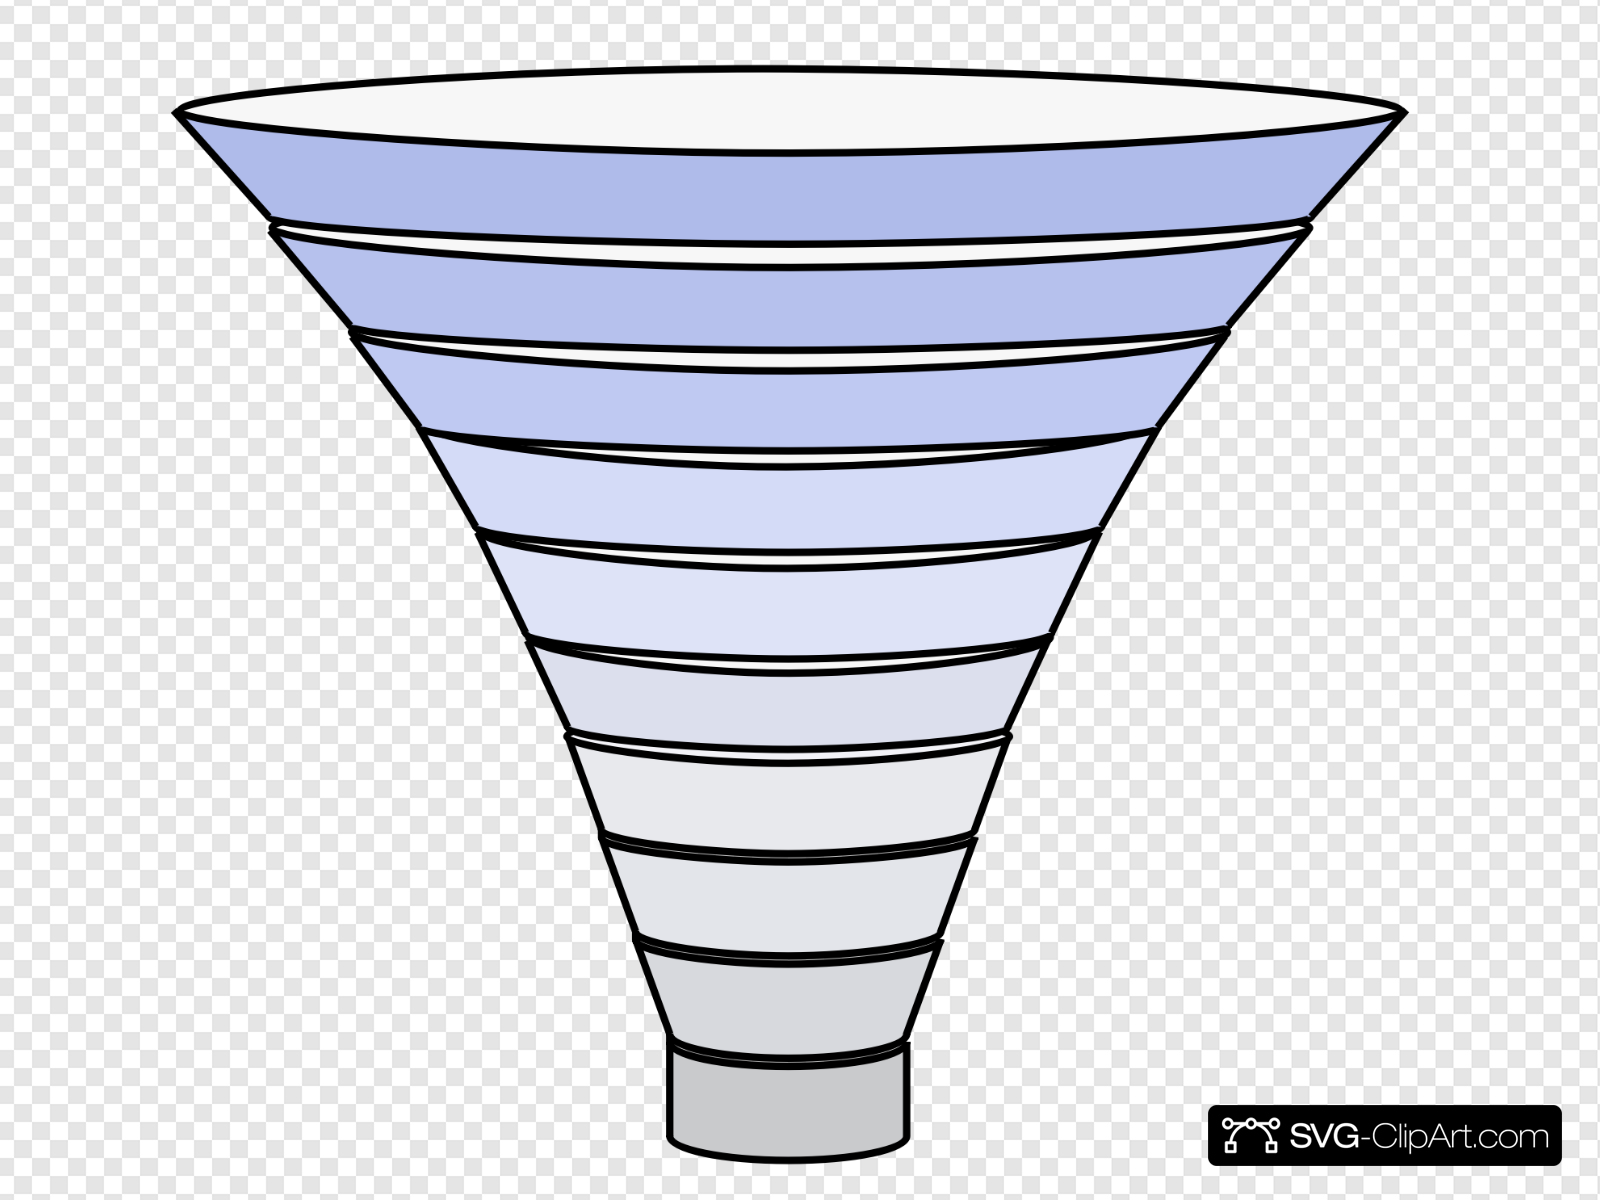 Funnel Tier Blue Filter Clip art, Icon and SVG.